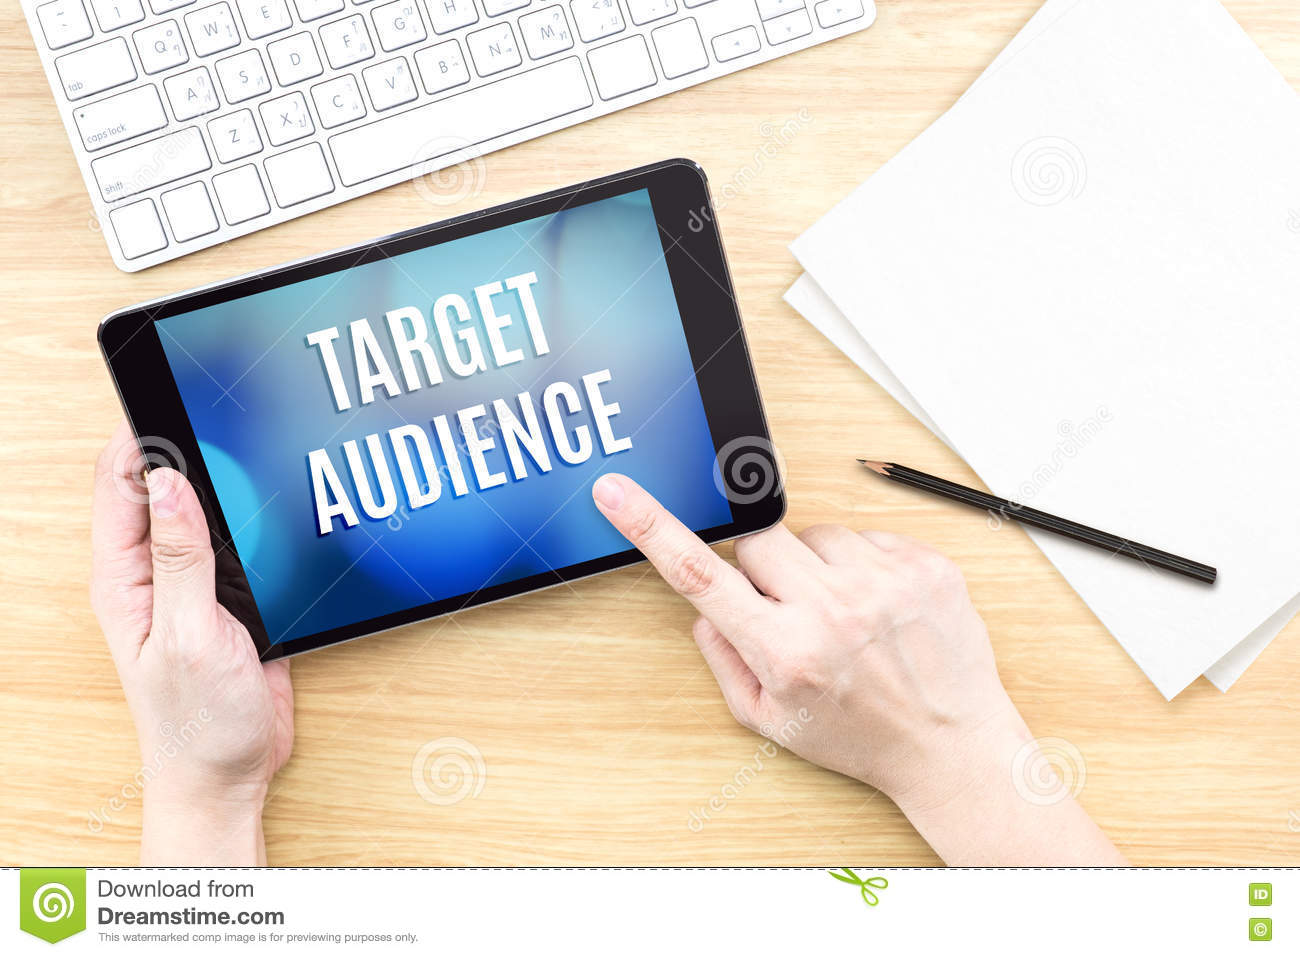 Finger touch screen with target audience word with keyboard on w